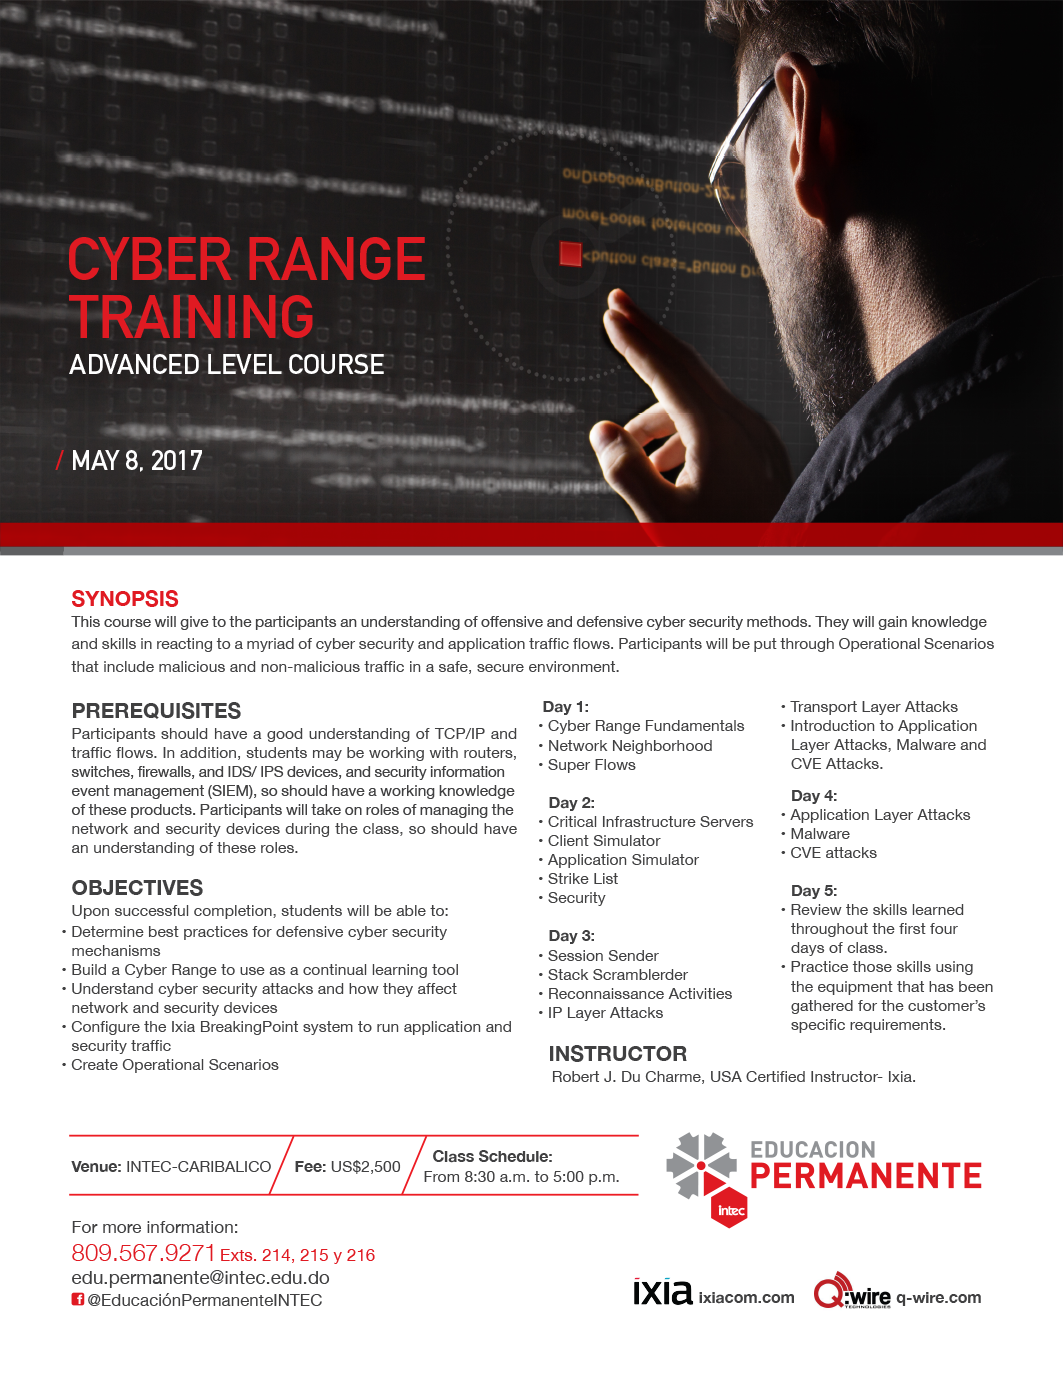 Cyber Range Trainig: Avanced Level Course